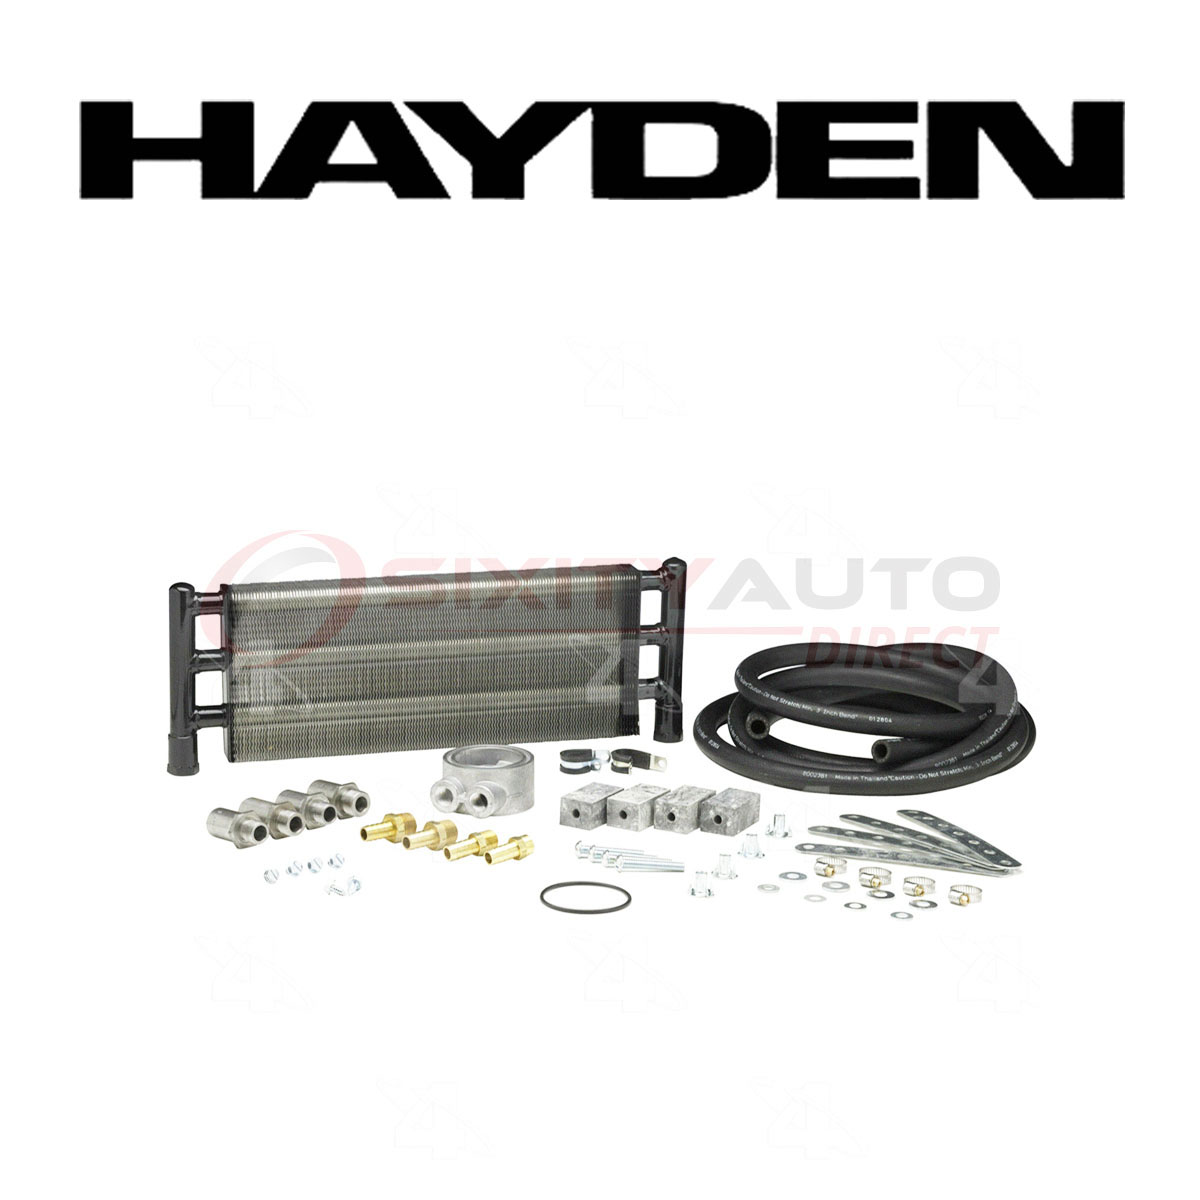 Hayden Oil Cooler For 1995 Toyota Tercel 1 5l L4